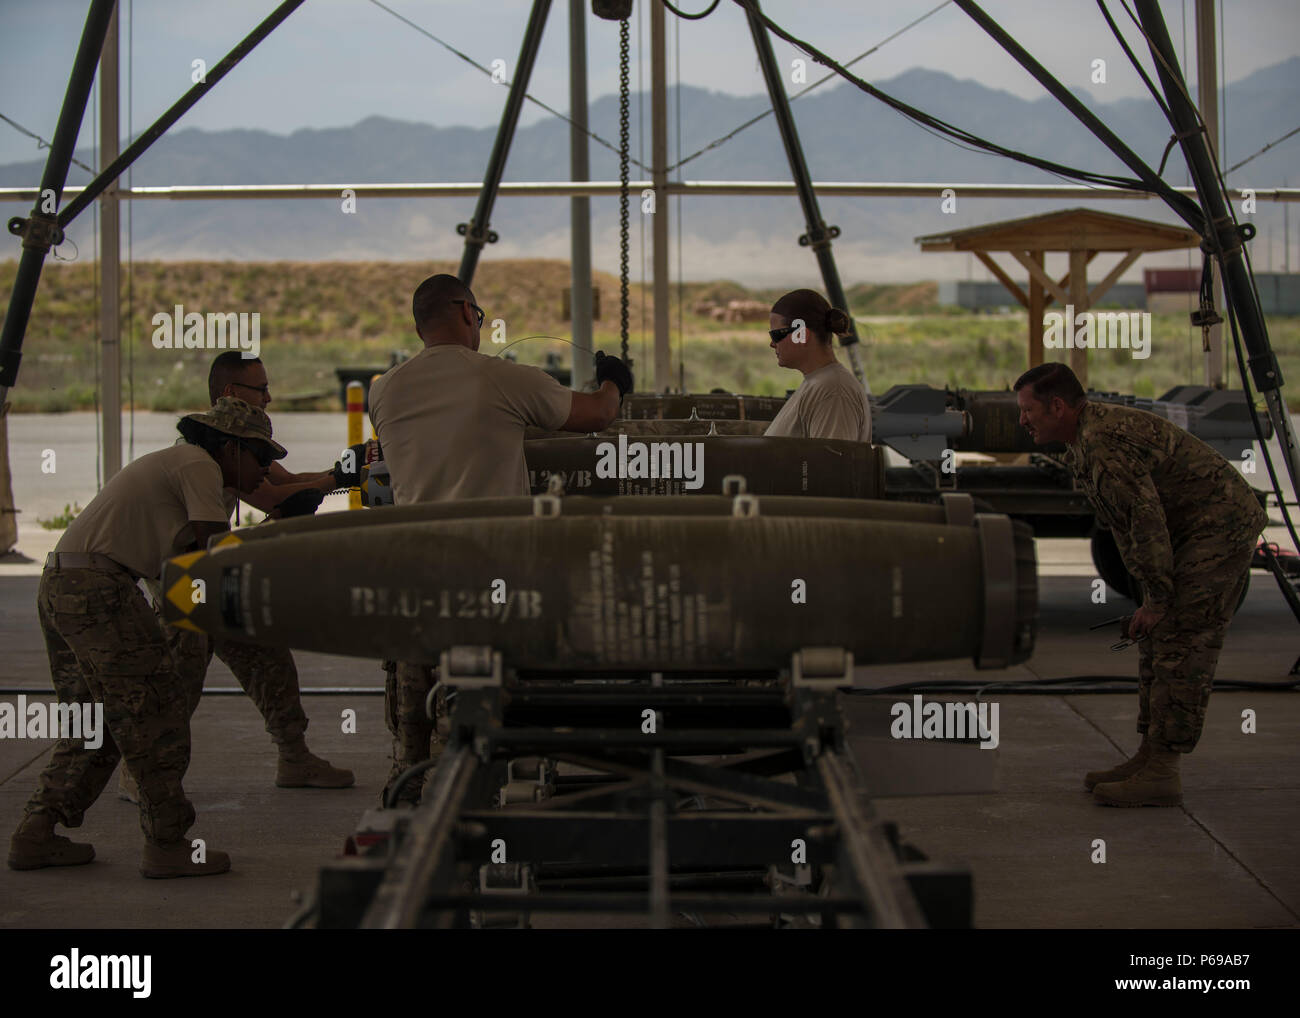 288be08d067e2 Airmen from the 455th Expeditionary Maintenance Squadron